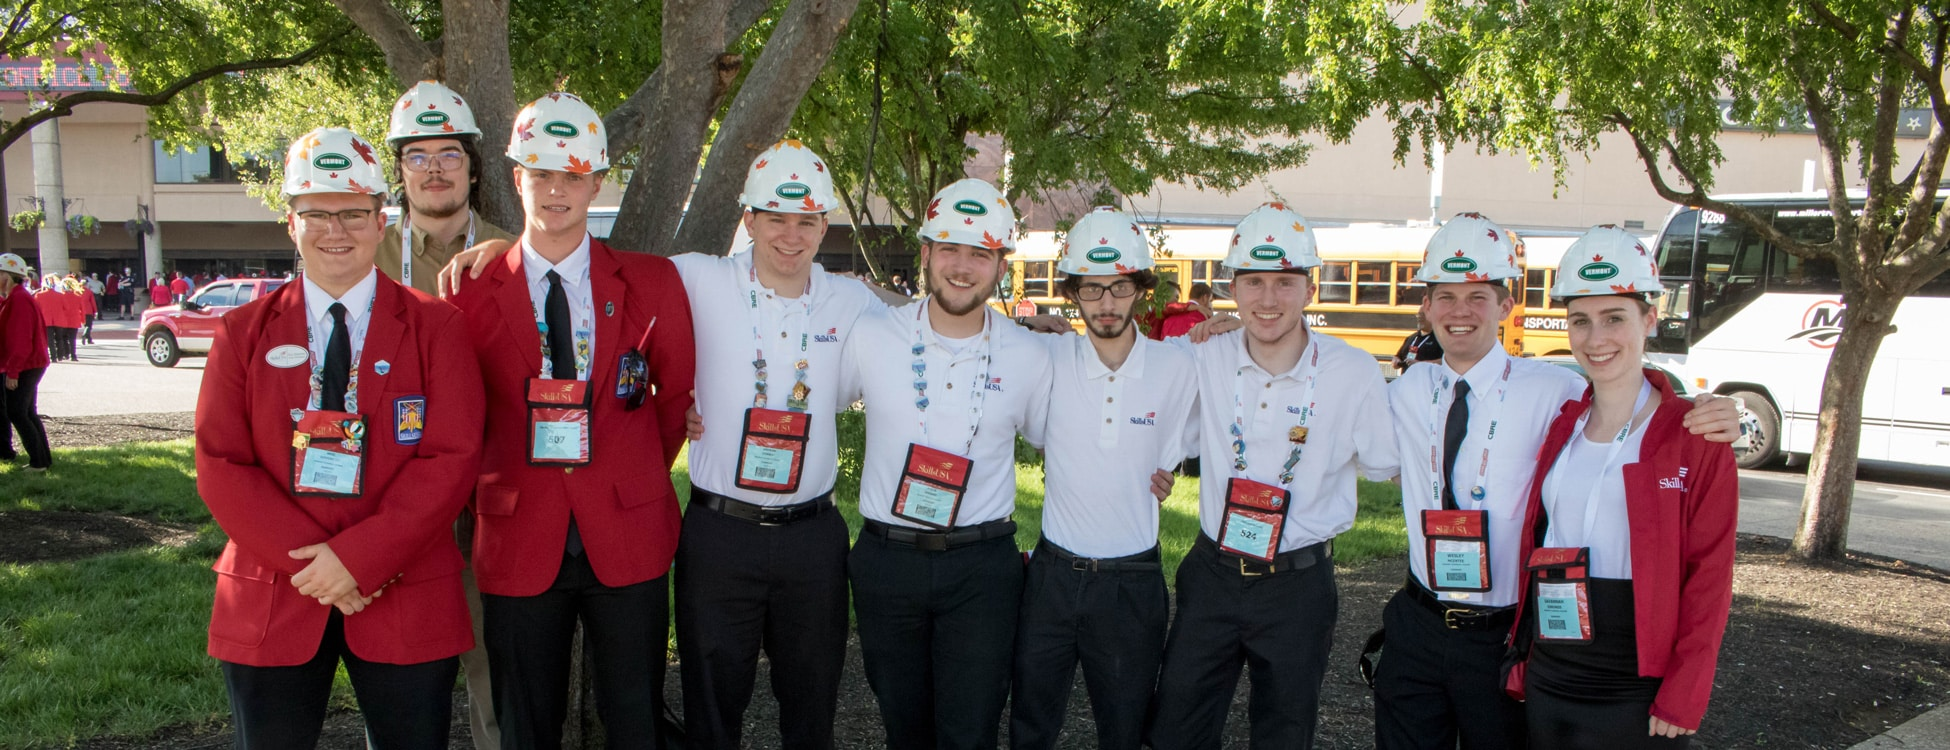 SkillsUSA, student winners at national competition, bronze metal